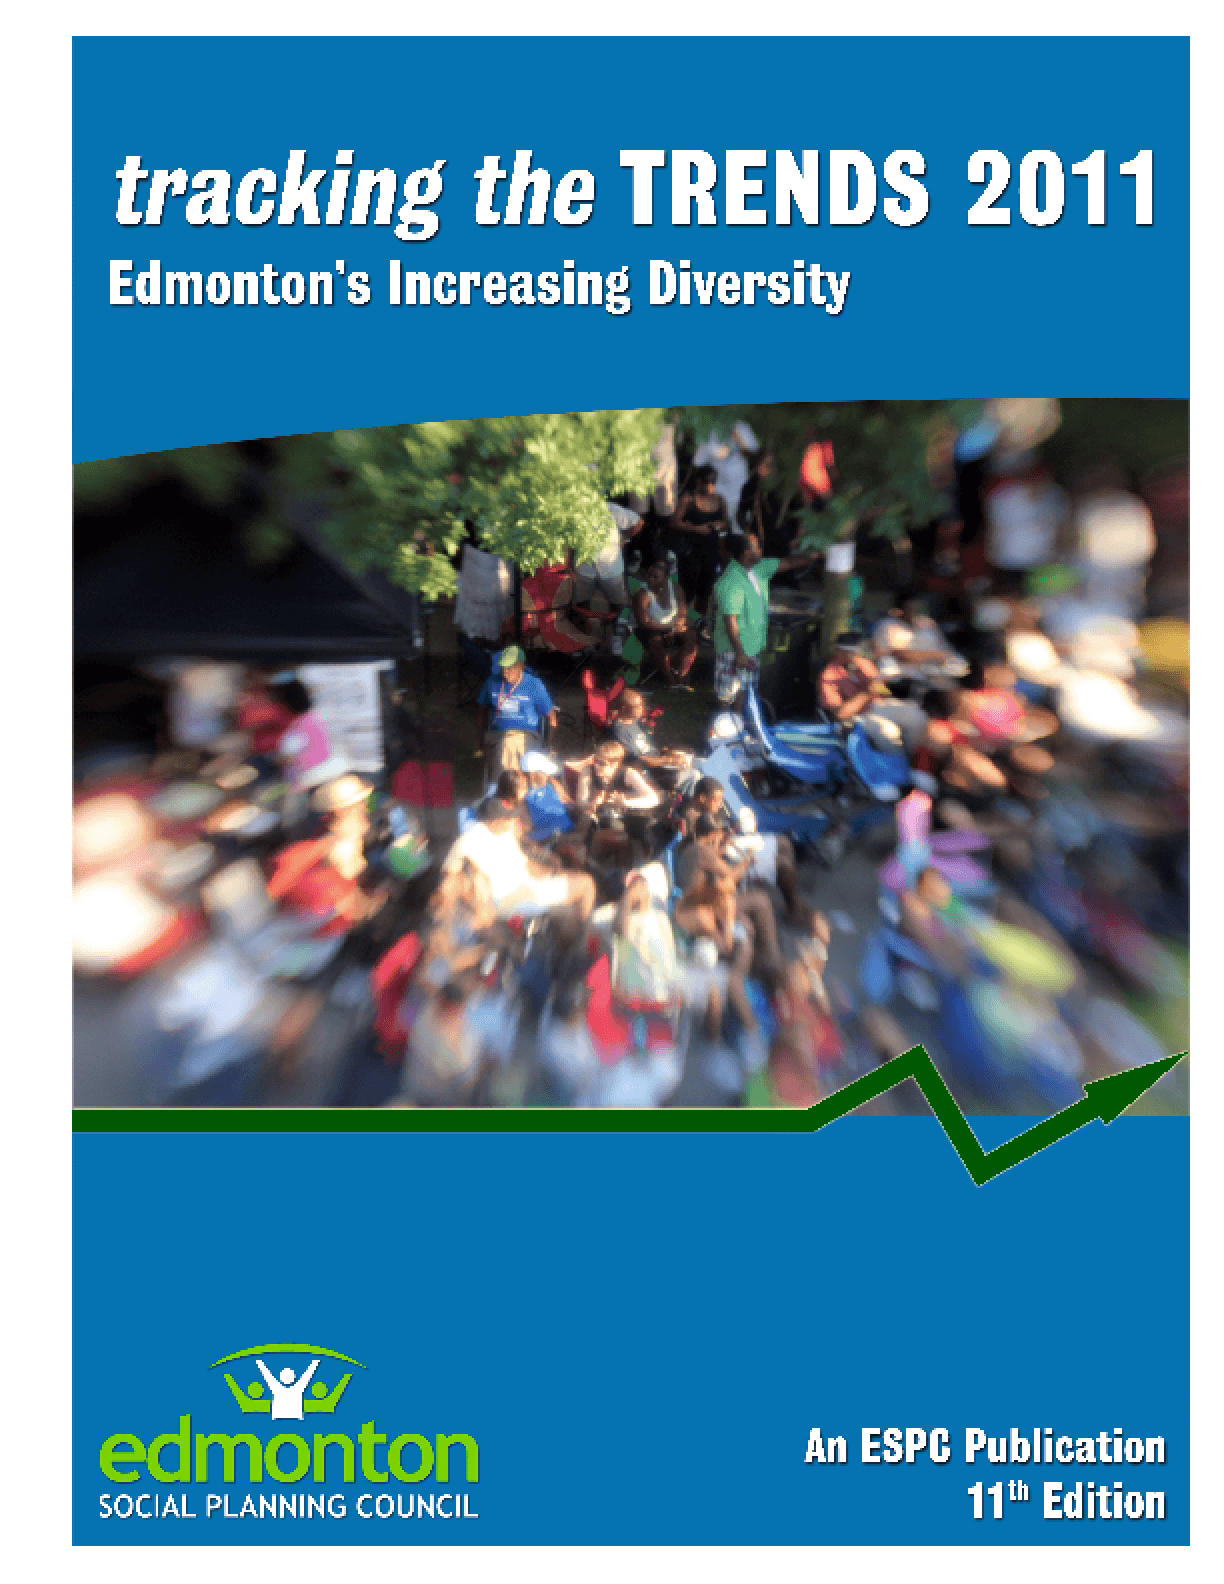 Tracking The Trends: Edmonton's Increasing Diversity